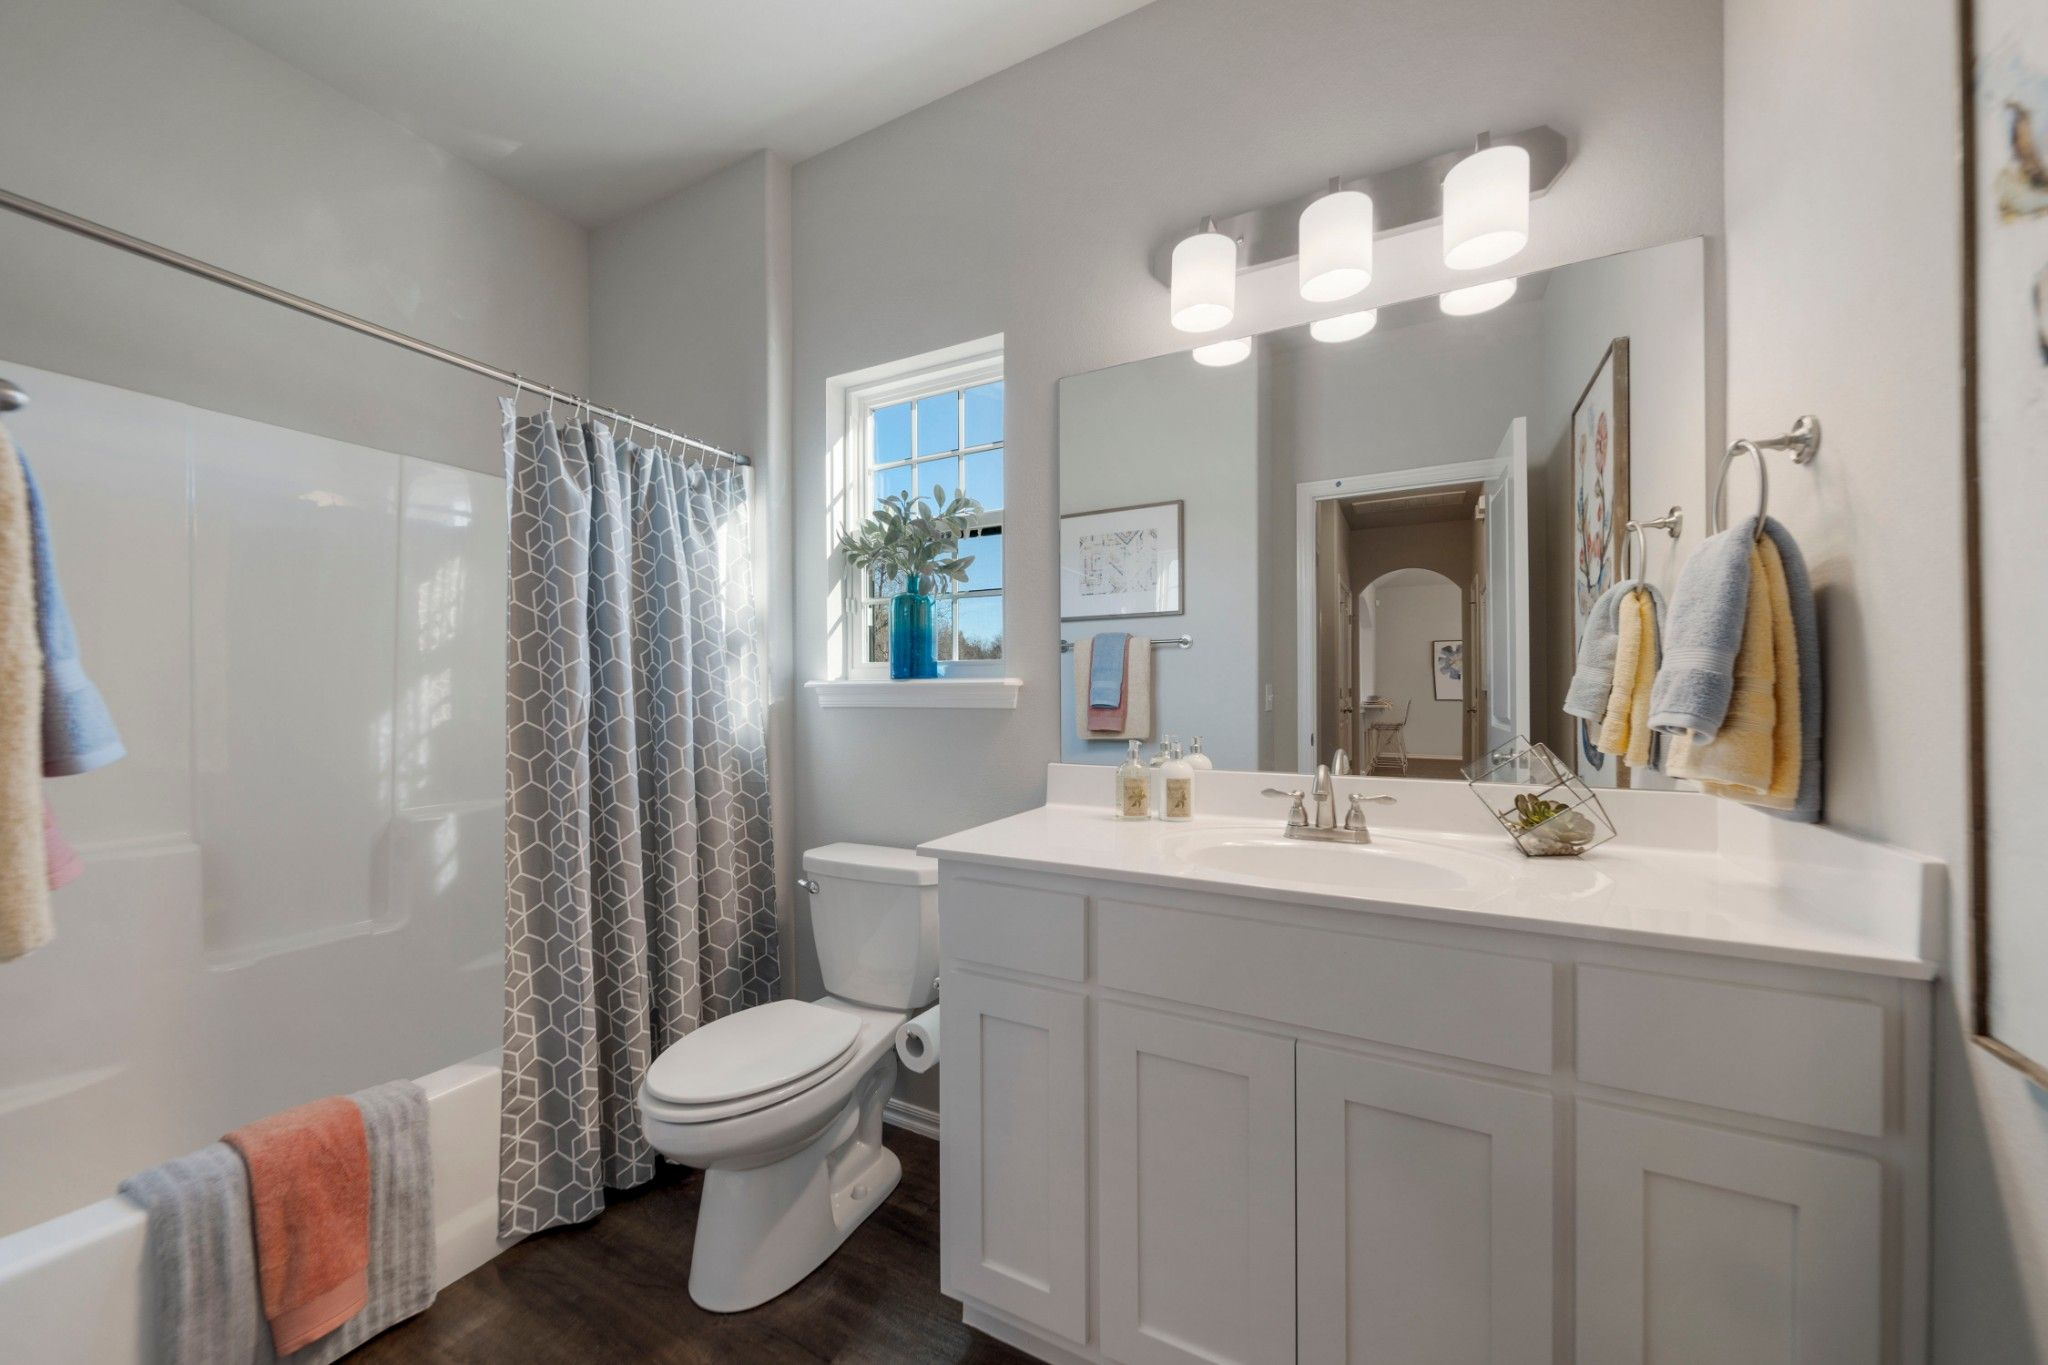 Bathroom featured in the Evergreen By Capital Homes in Tulsa, OK